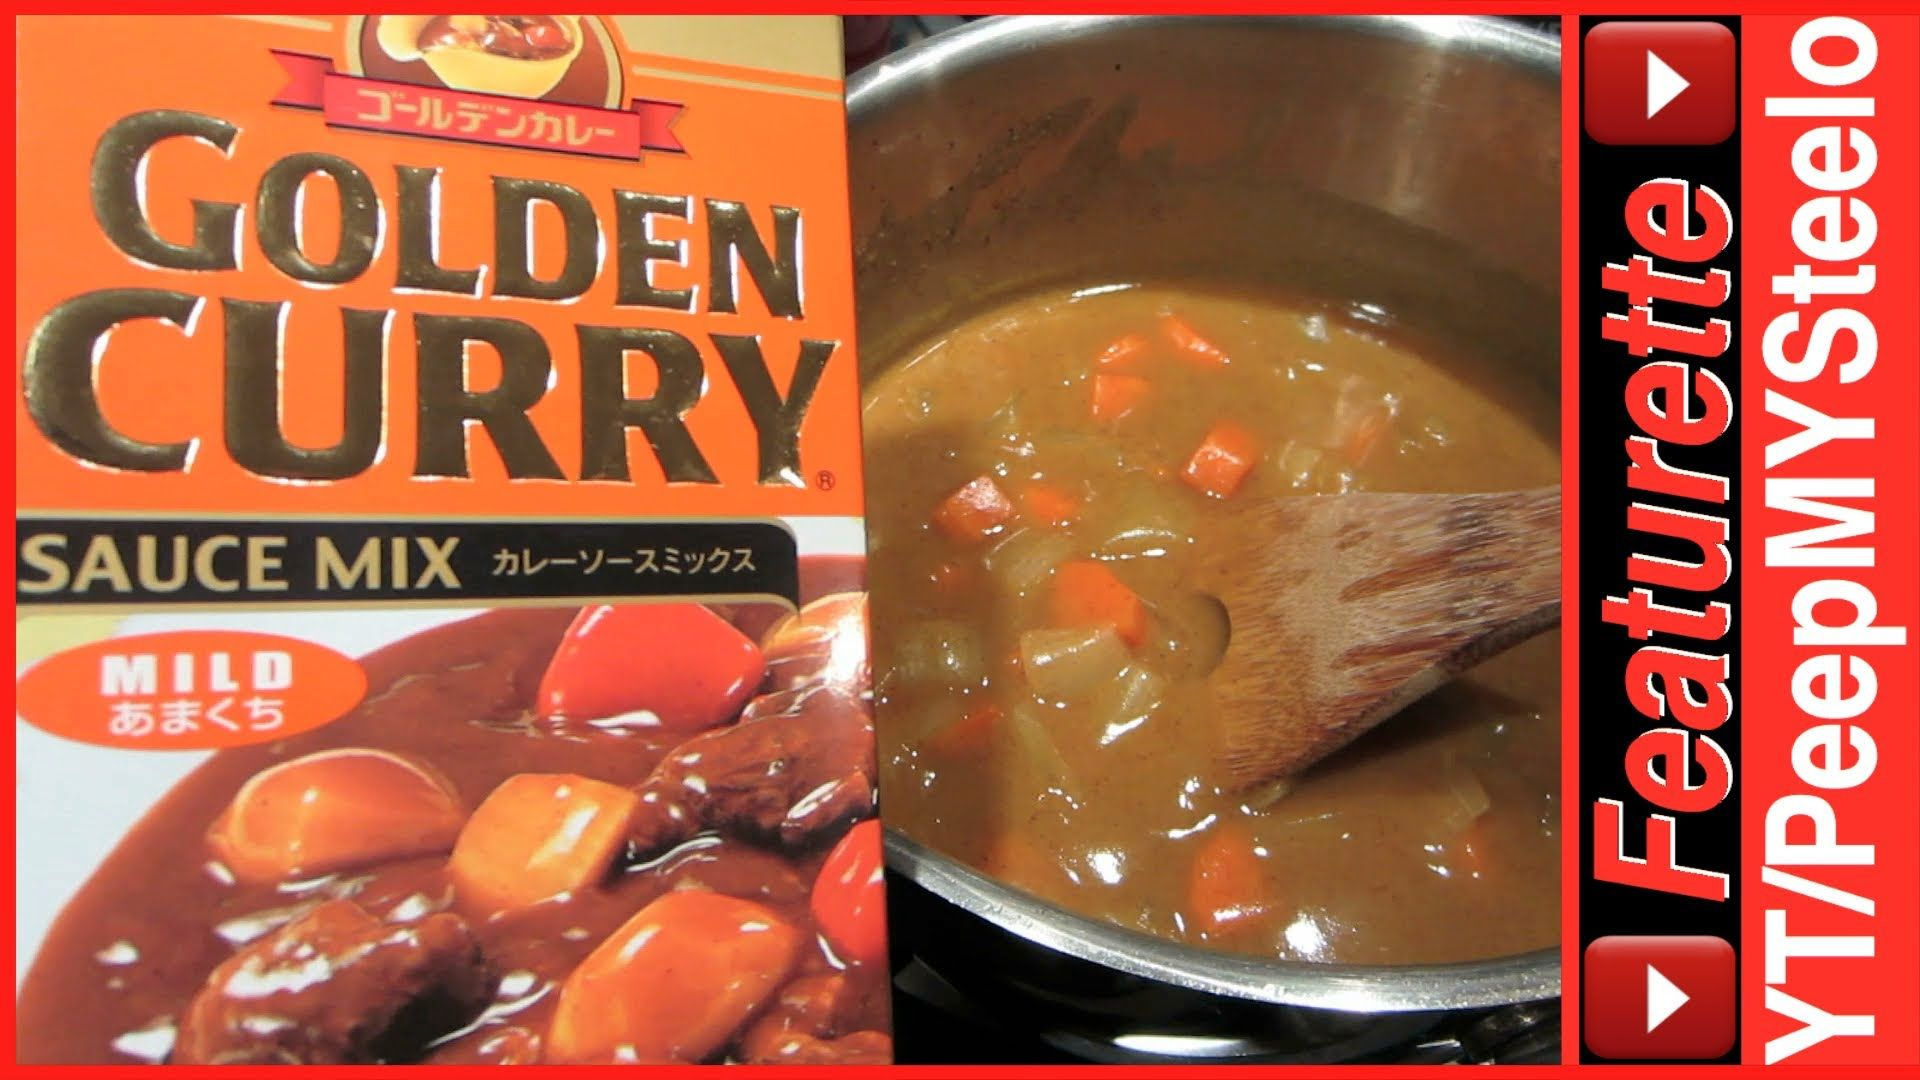 Golden Curry Japanese Curry Recipe Sauce Mix W Instructions Beef Or Chicken To Pork Cutlet On Rice Japanese Curry Curry Recipes S B Golden Curry Recipe